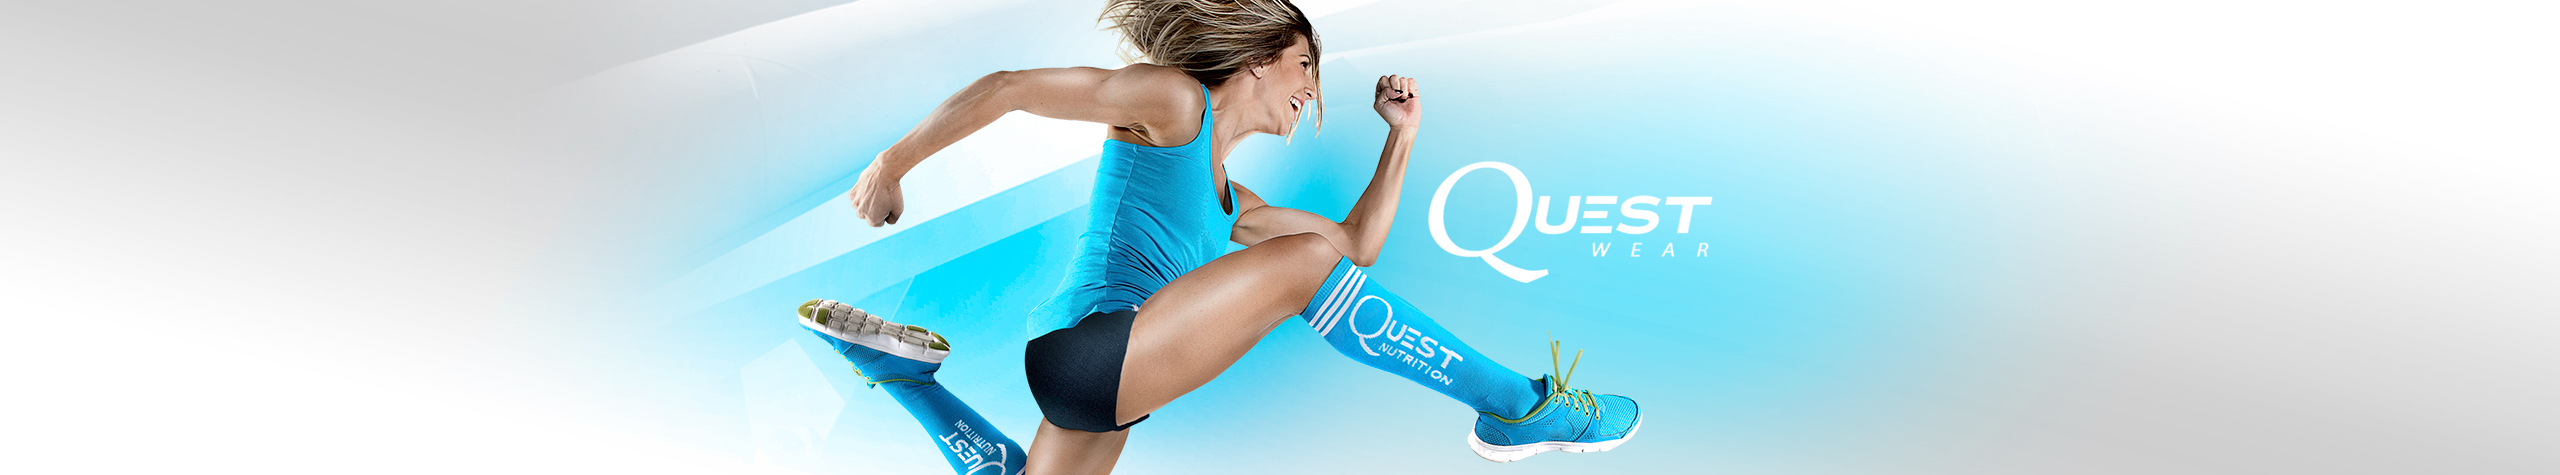 New Quest Clothing Gear Available Now!